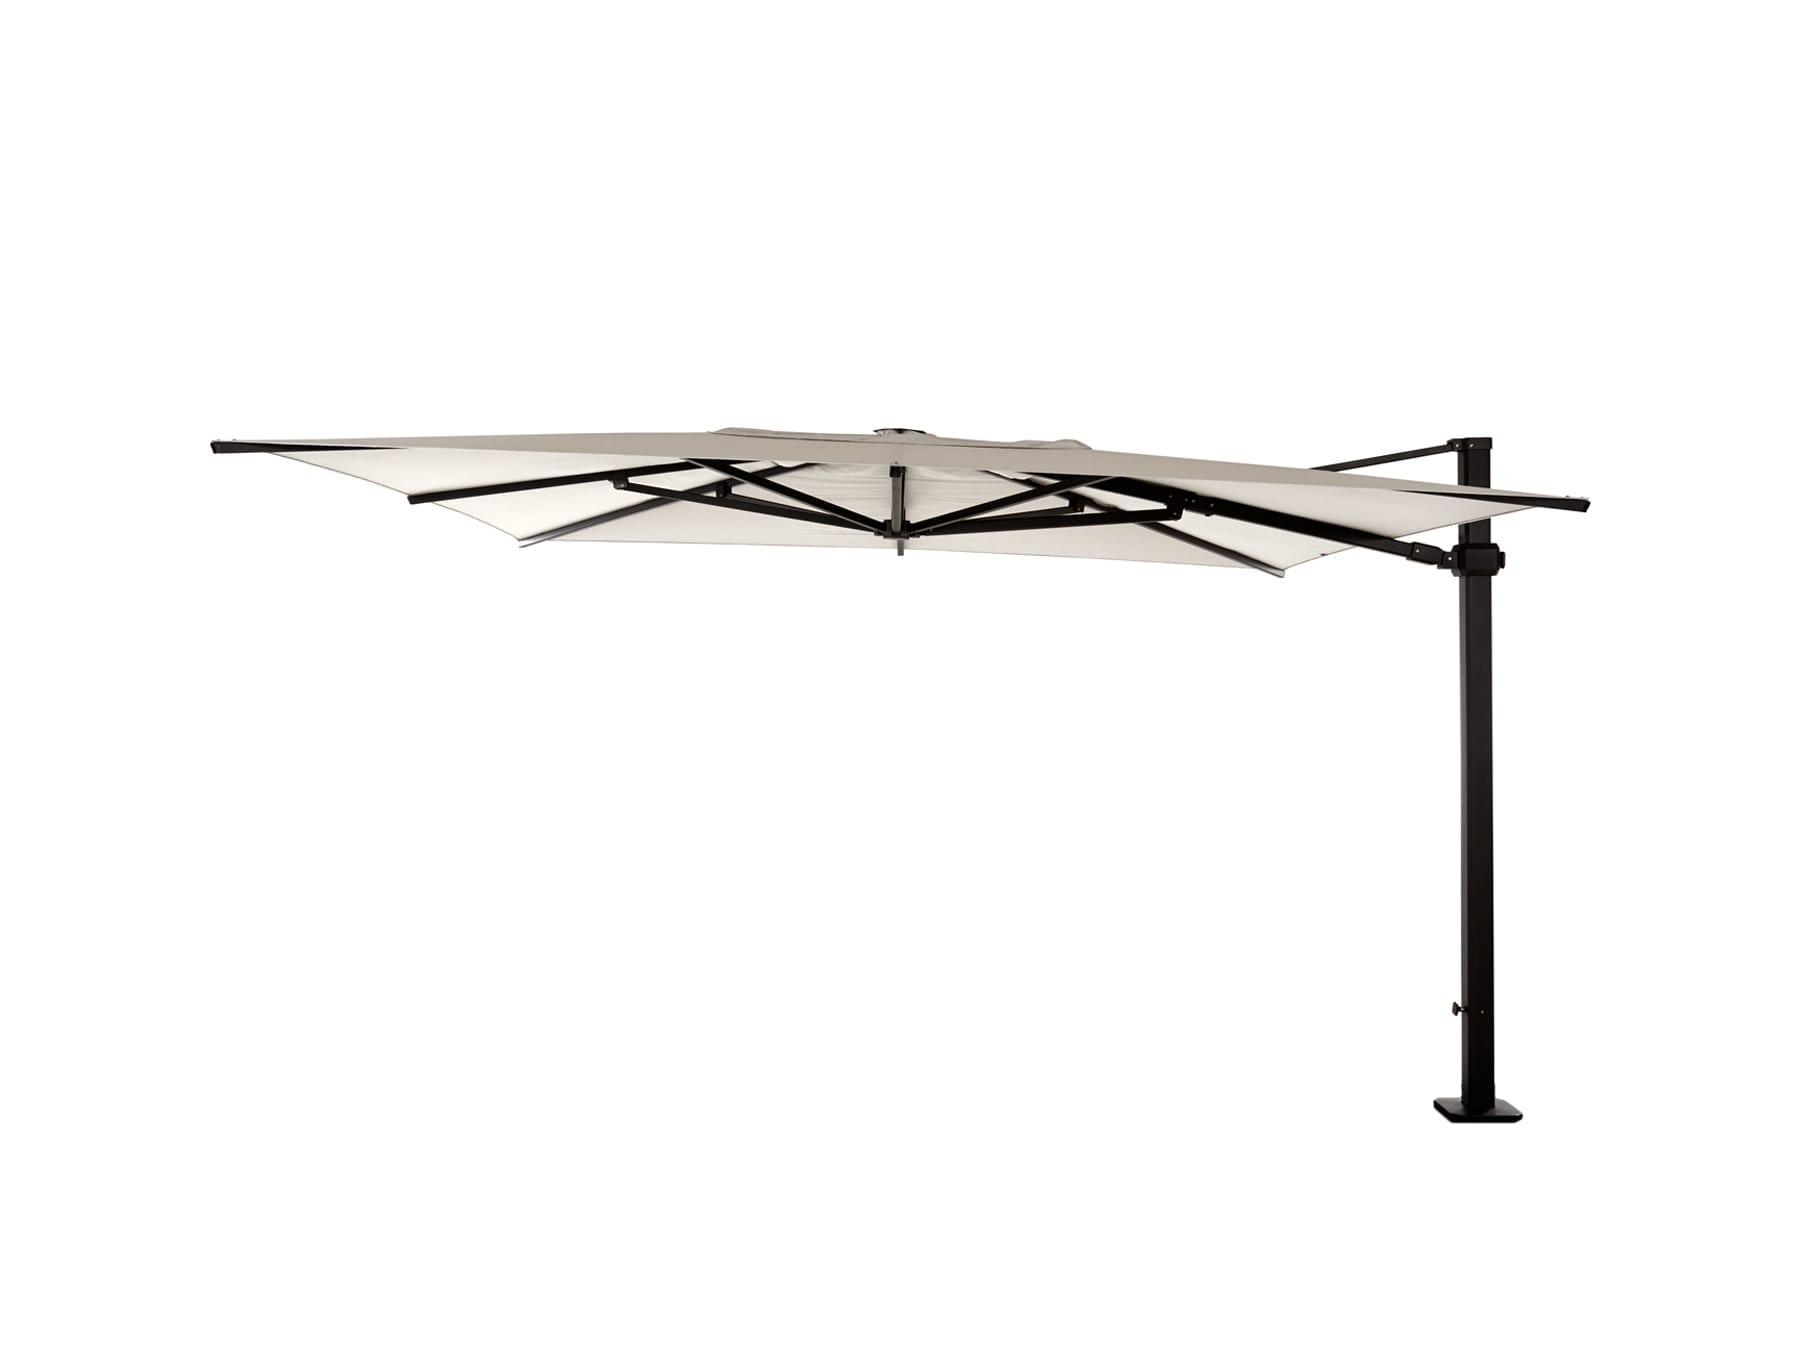 Jardinico Caractere 401 Umbrella available at McKenzie & Willis